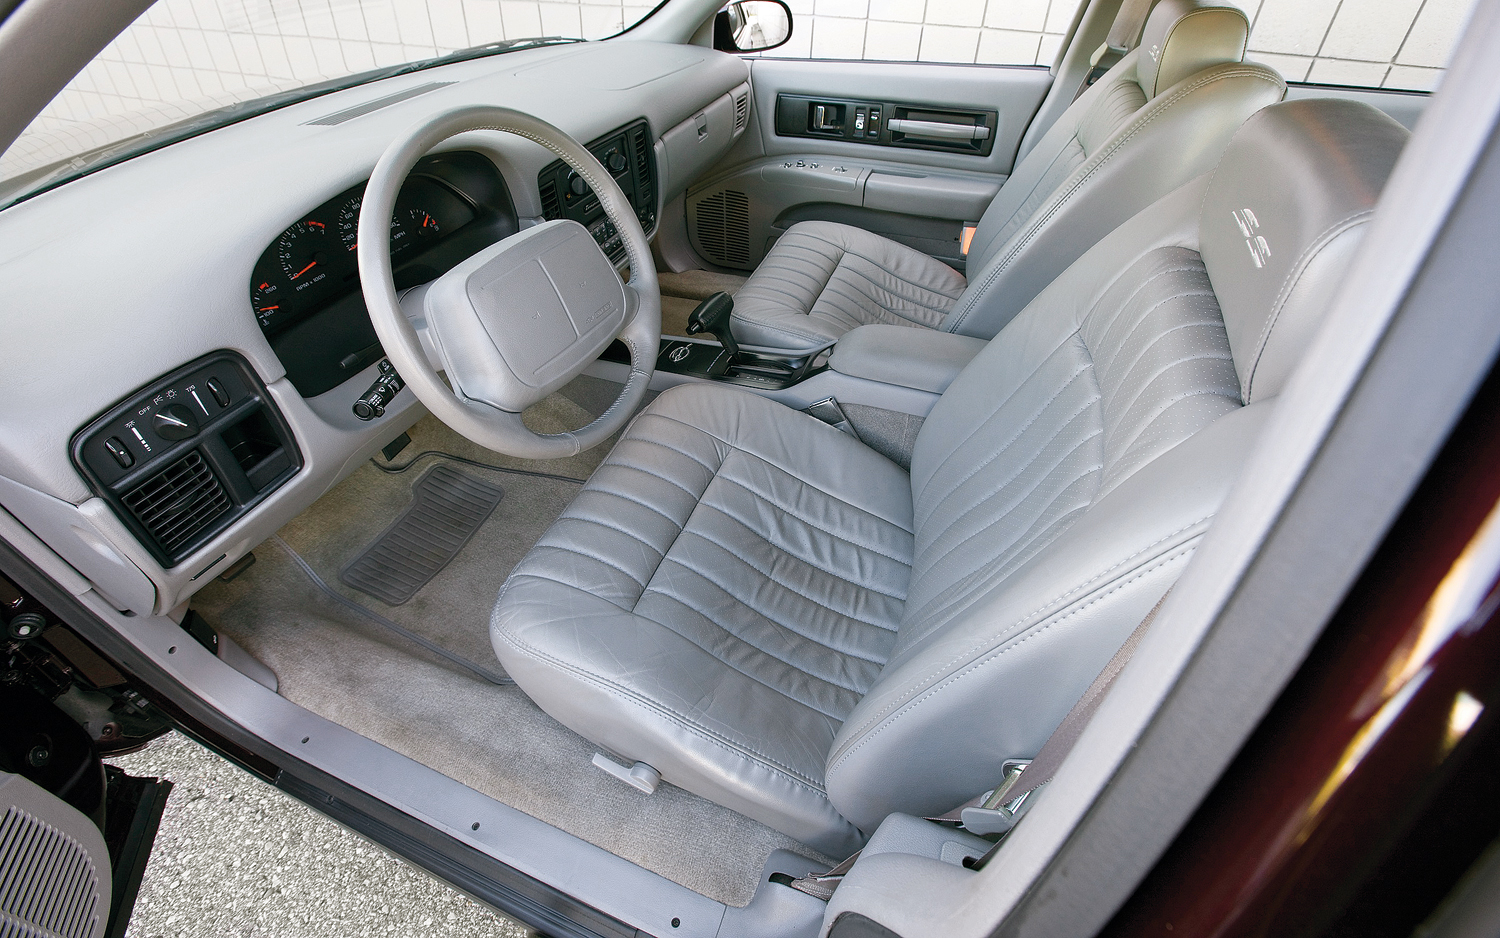 Impala 96 chevy impala : My perfect Chevrolet Impala SS. 3DTuning - probably the best car ...